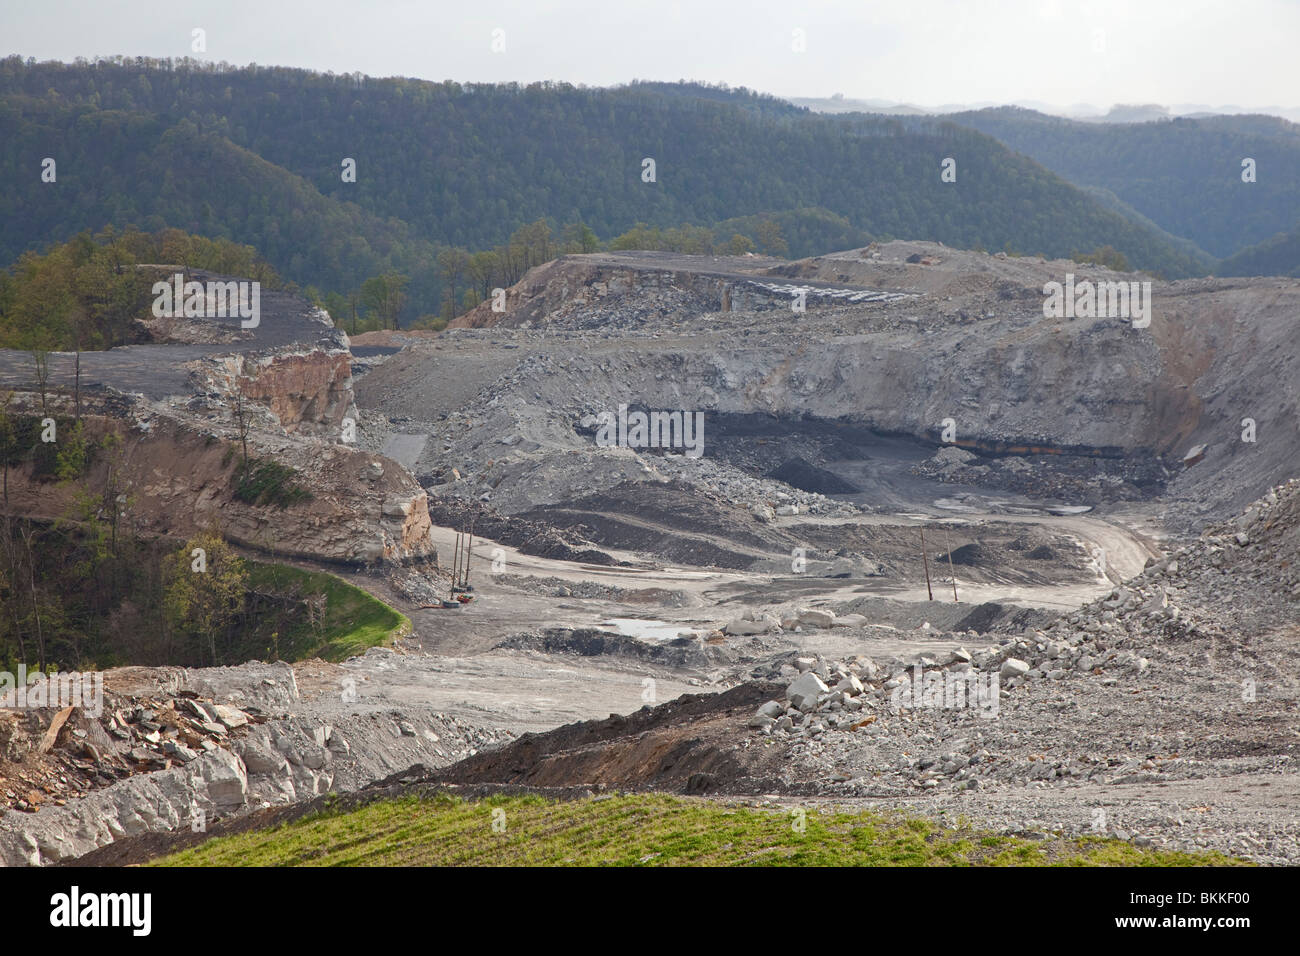 Mountaintop Removal Coal Mining Site Stock Photo